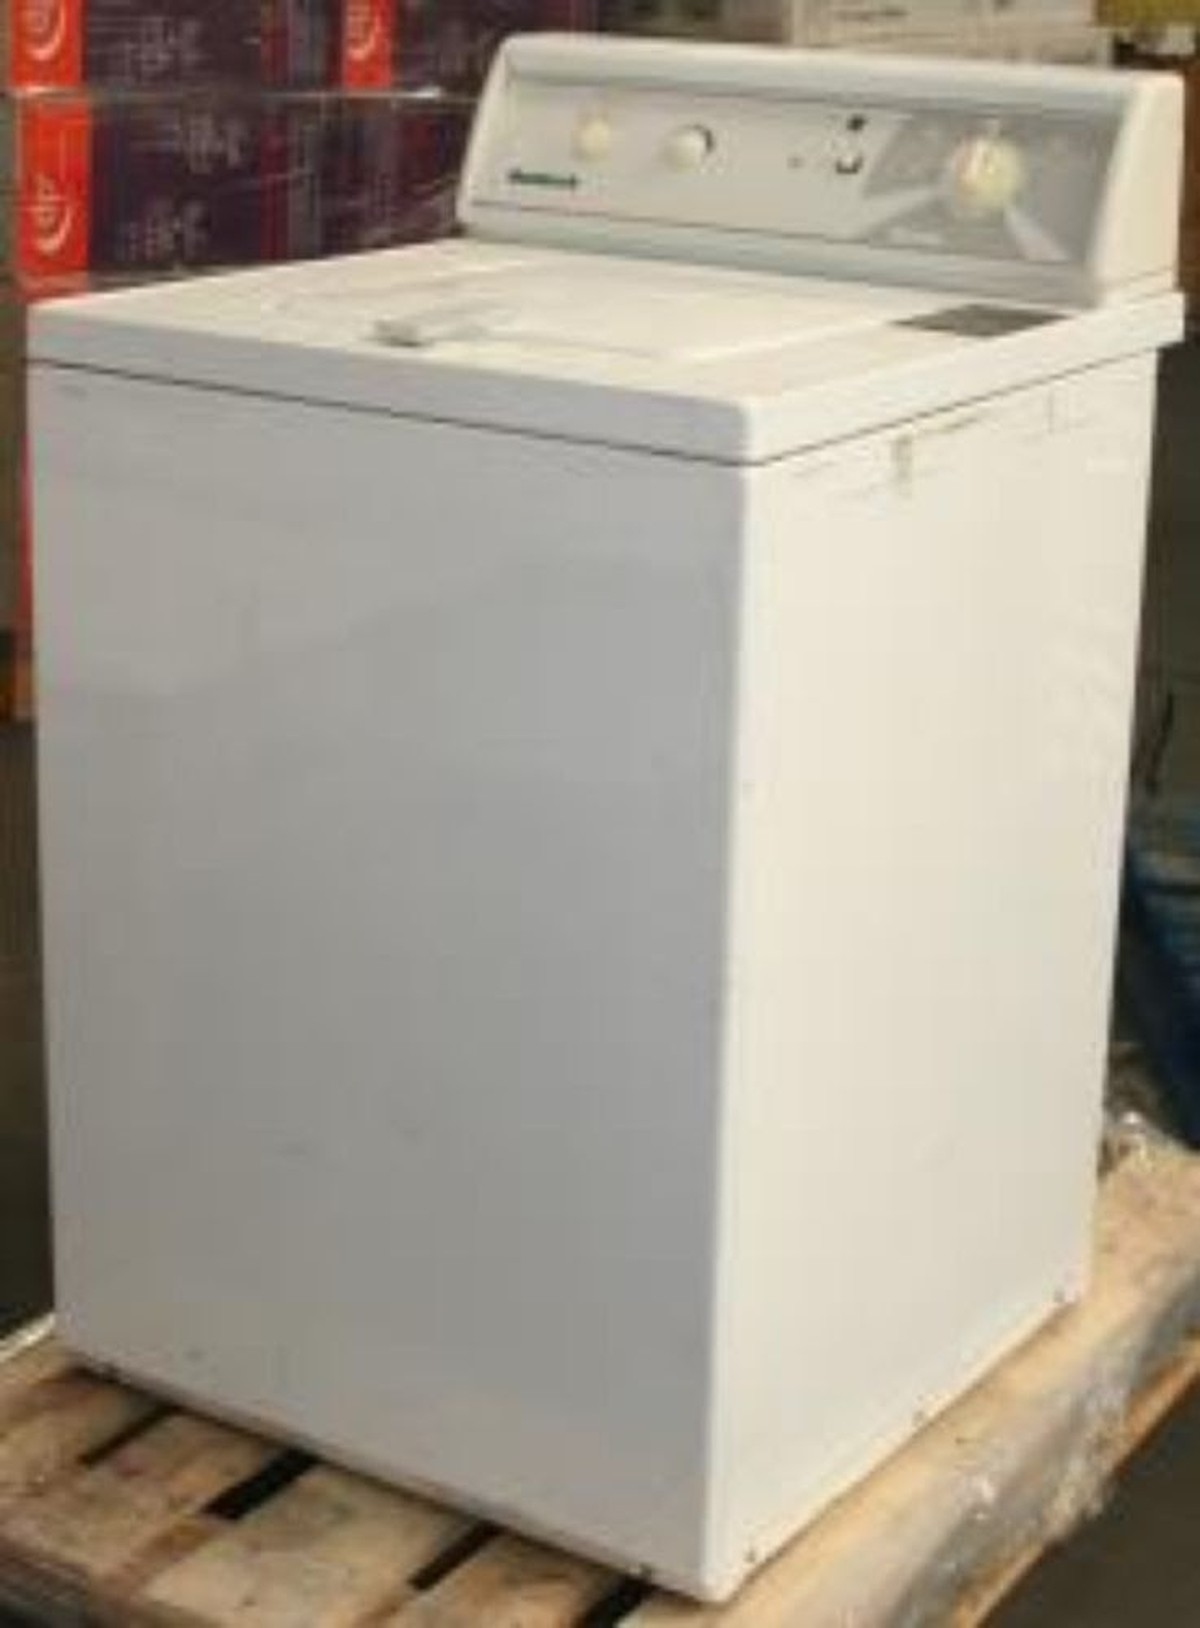 Secondhand Laundry Equipment Top Loading Washing